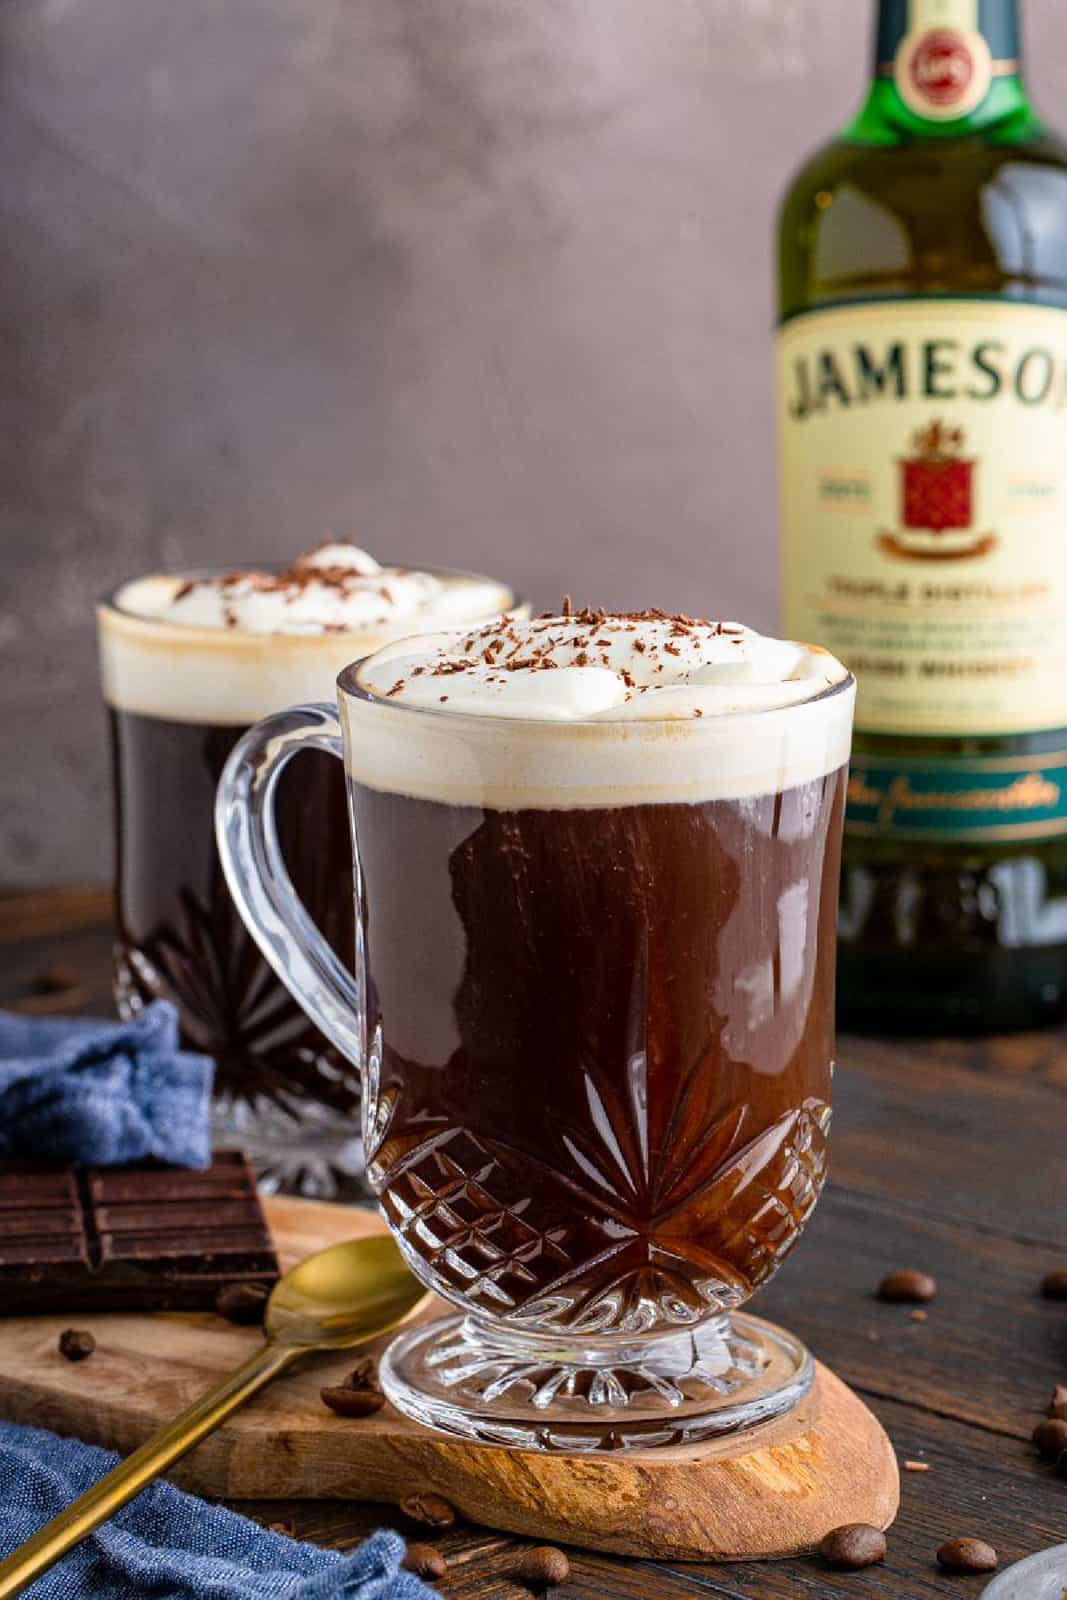 Two mugs of Irish Coffee with whiskey bottle in background